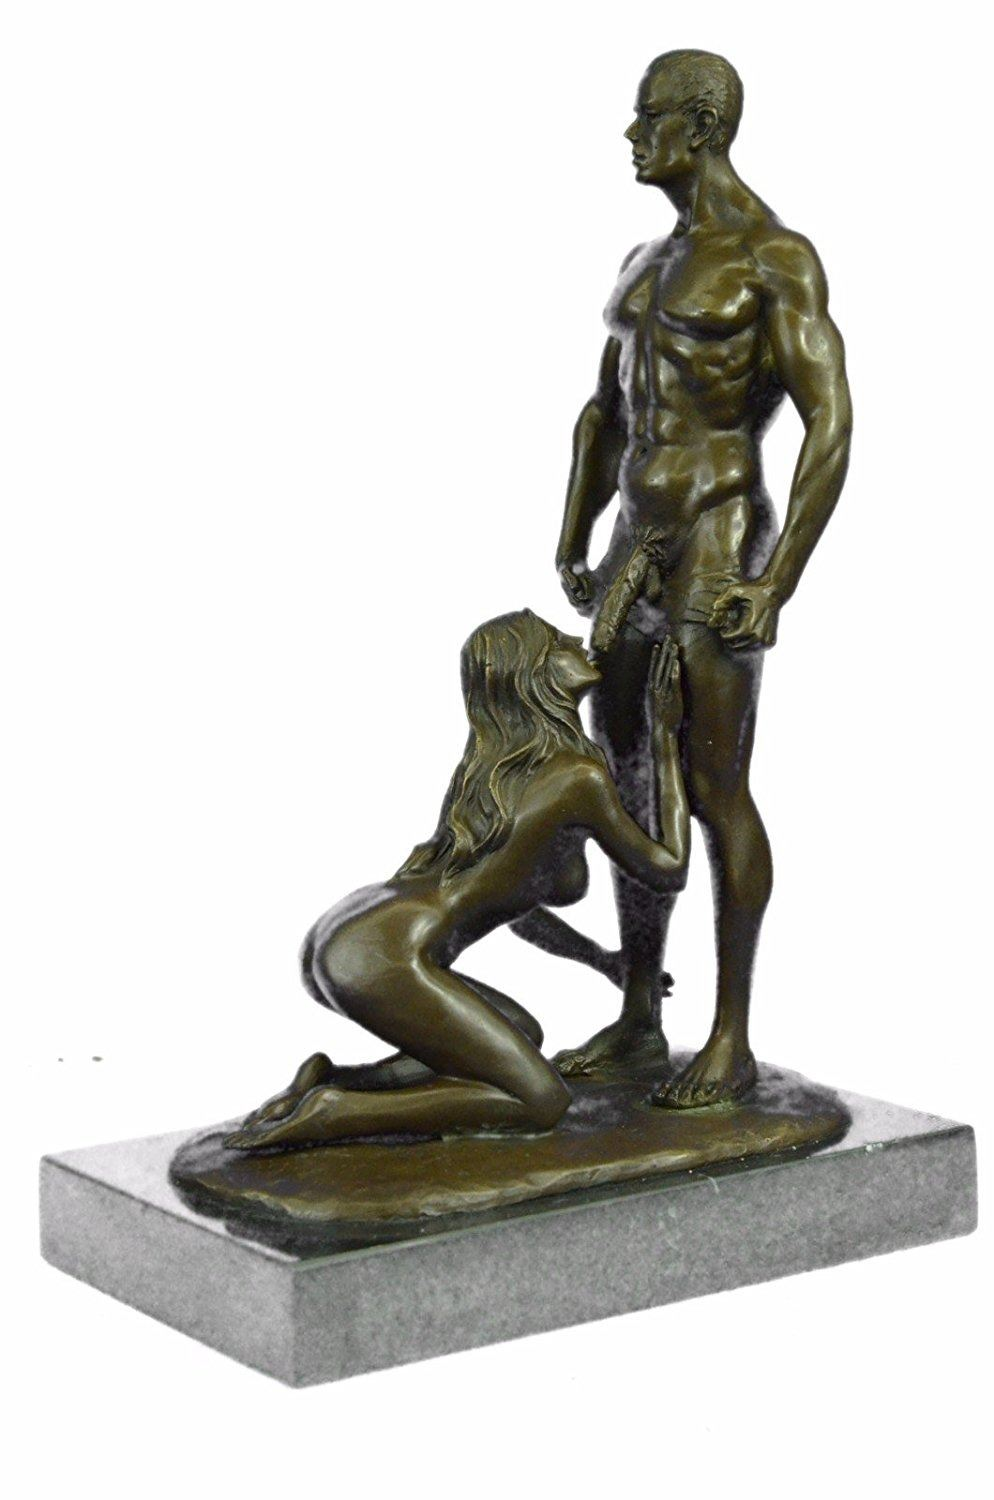 Bronze pleasure sculpture